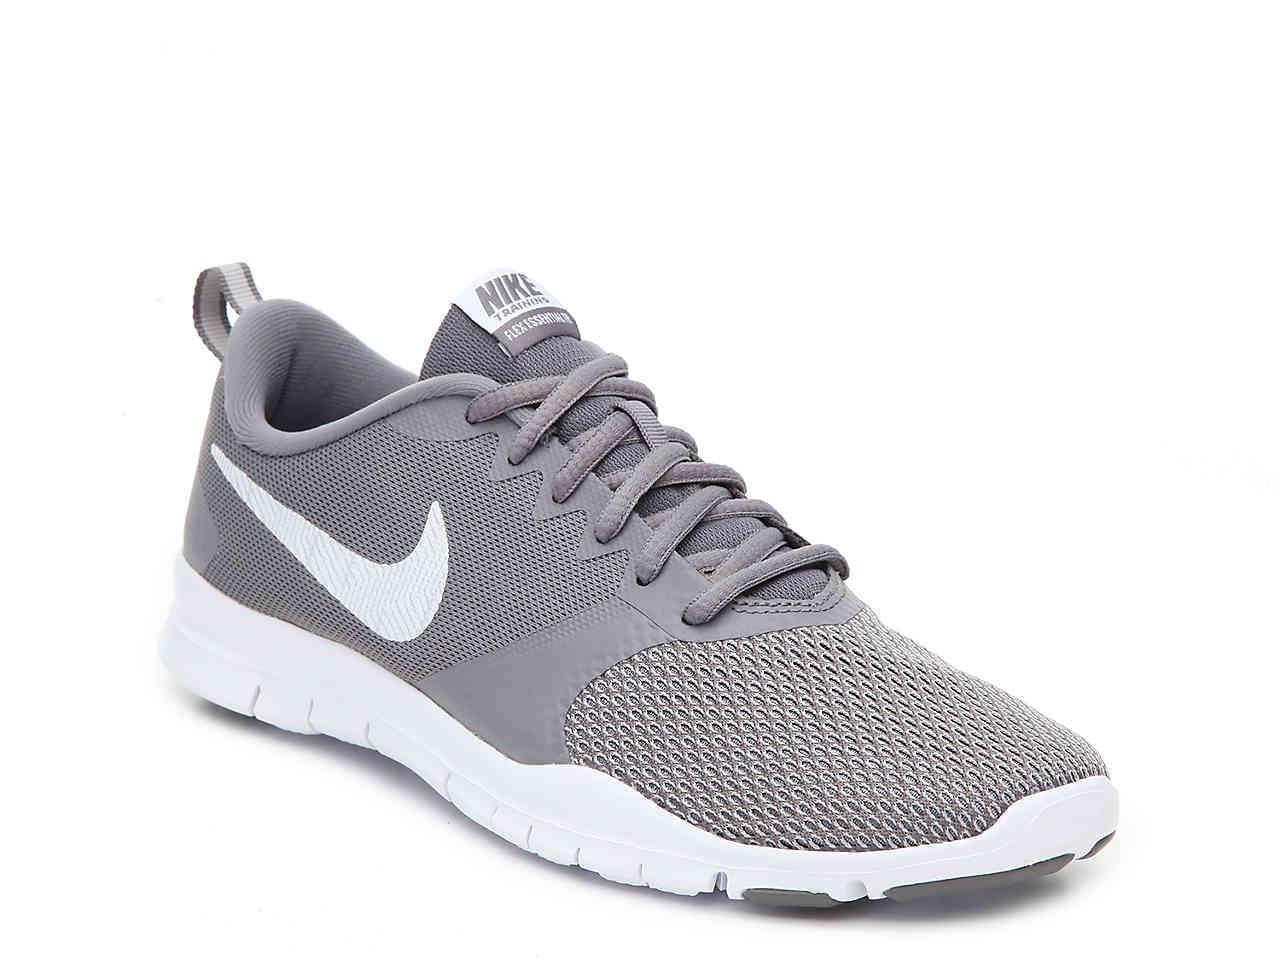 77a8b7b89e43b Lyst - Nike Flex Essential Tr Lightweight Training Shoe in Gray